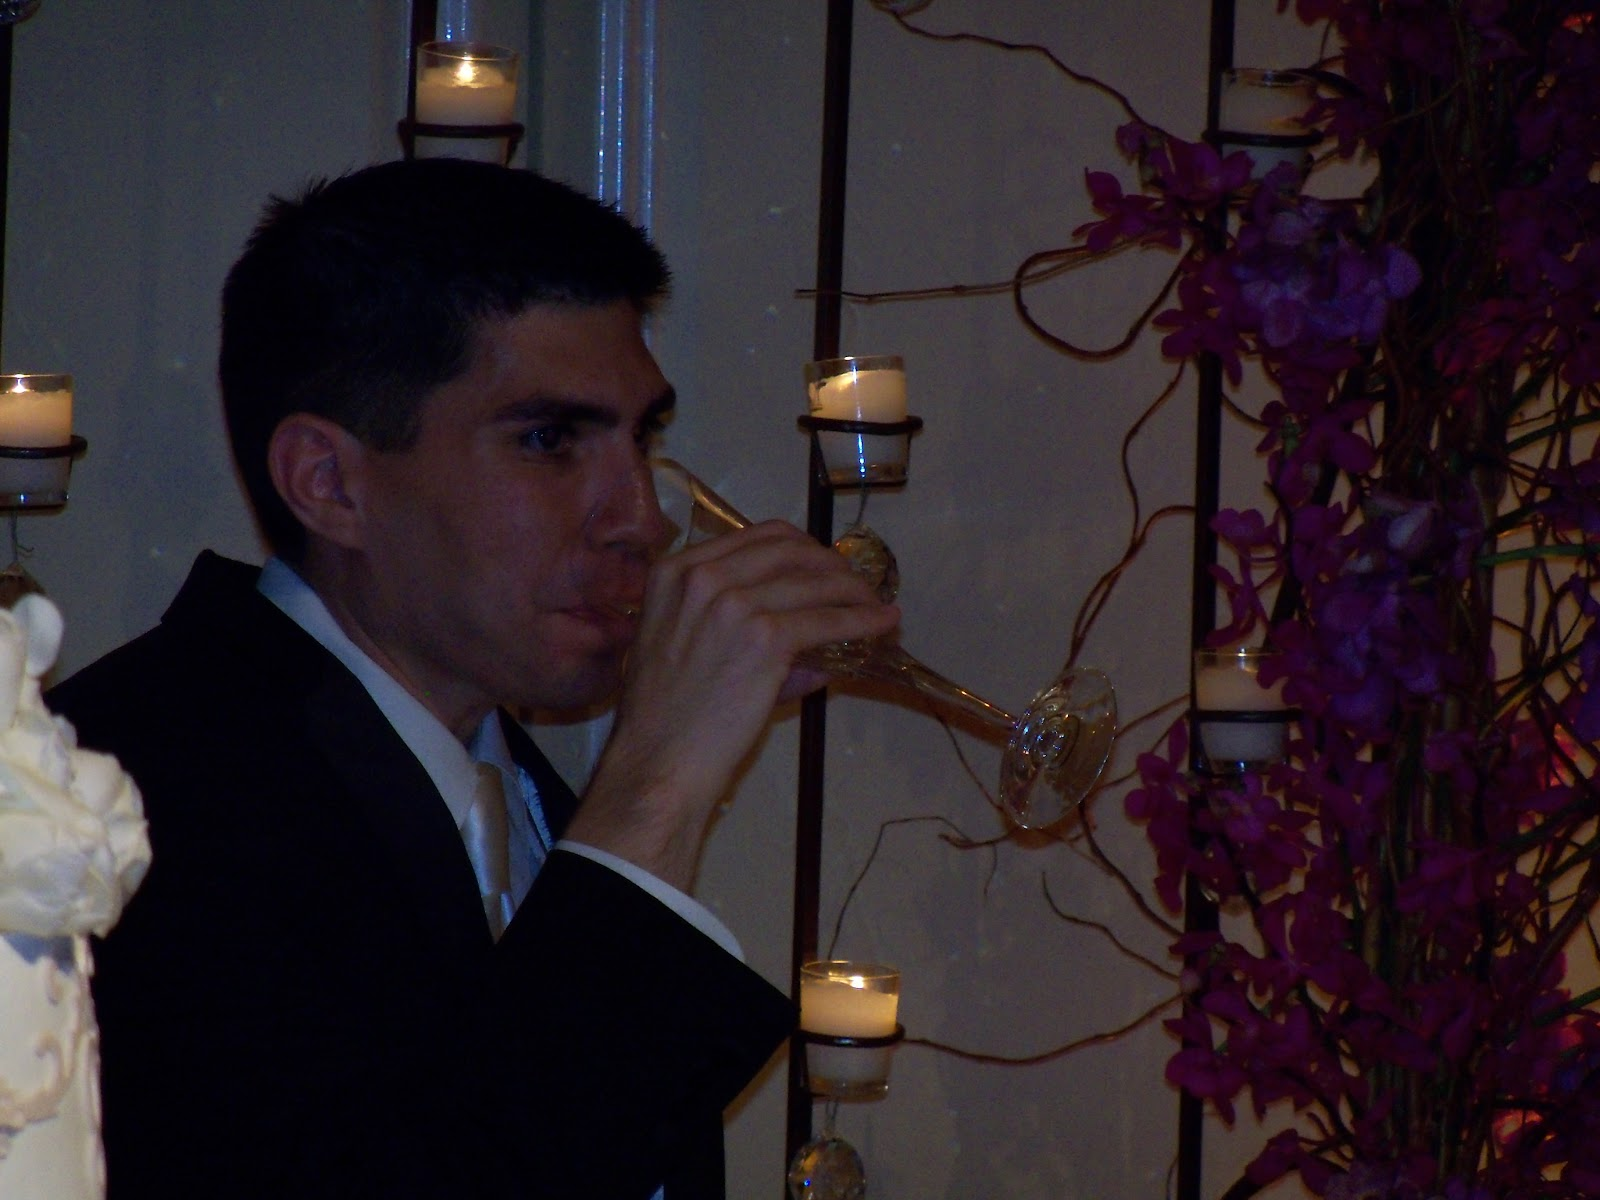 Megan Neal and Mark Suarez wedding - 100_8401.JPG